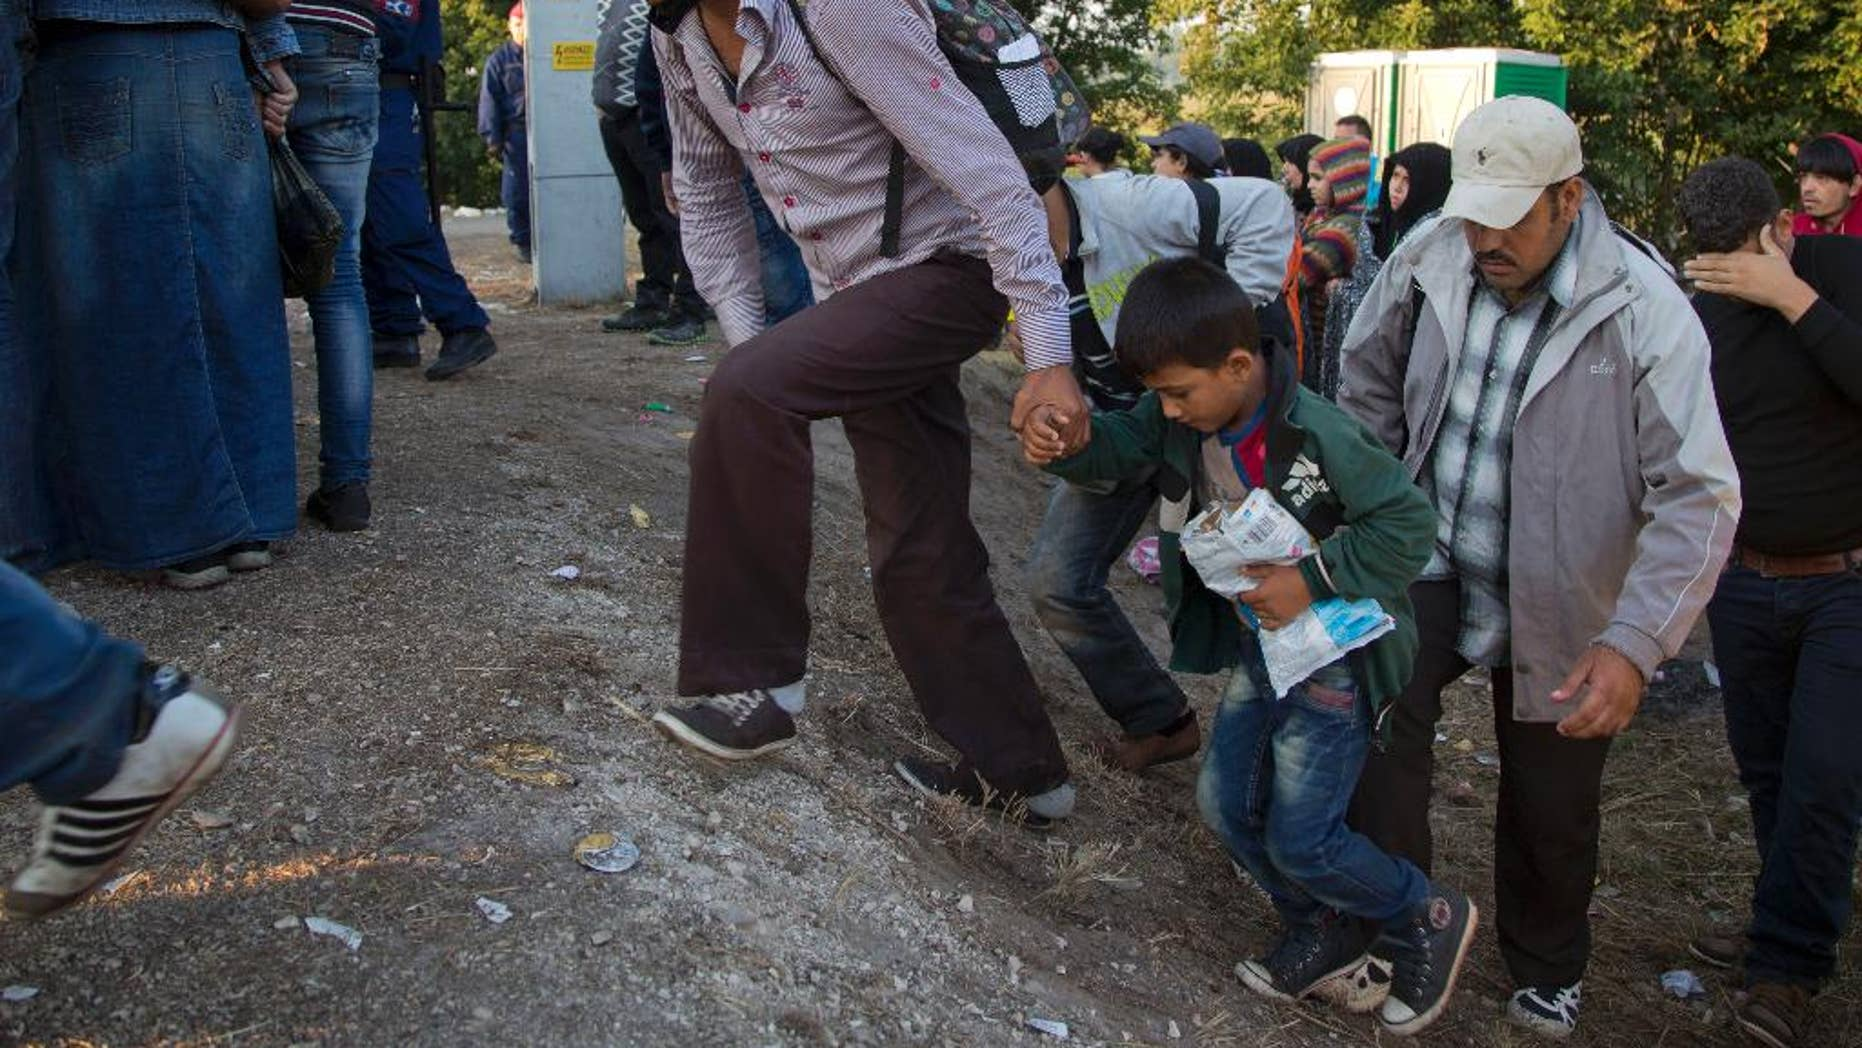 Aug. 31, 2015: Refugees who crossed the border from Serbia climb on a road to board a bus to transfer them to a refugee camp, in Asotthalom, Hungary. Migrants fearful of death at sea in overcrowded and flimsy boats have increasingly turned to using a land route to Europe through the Western Balkans.